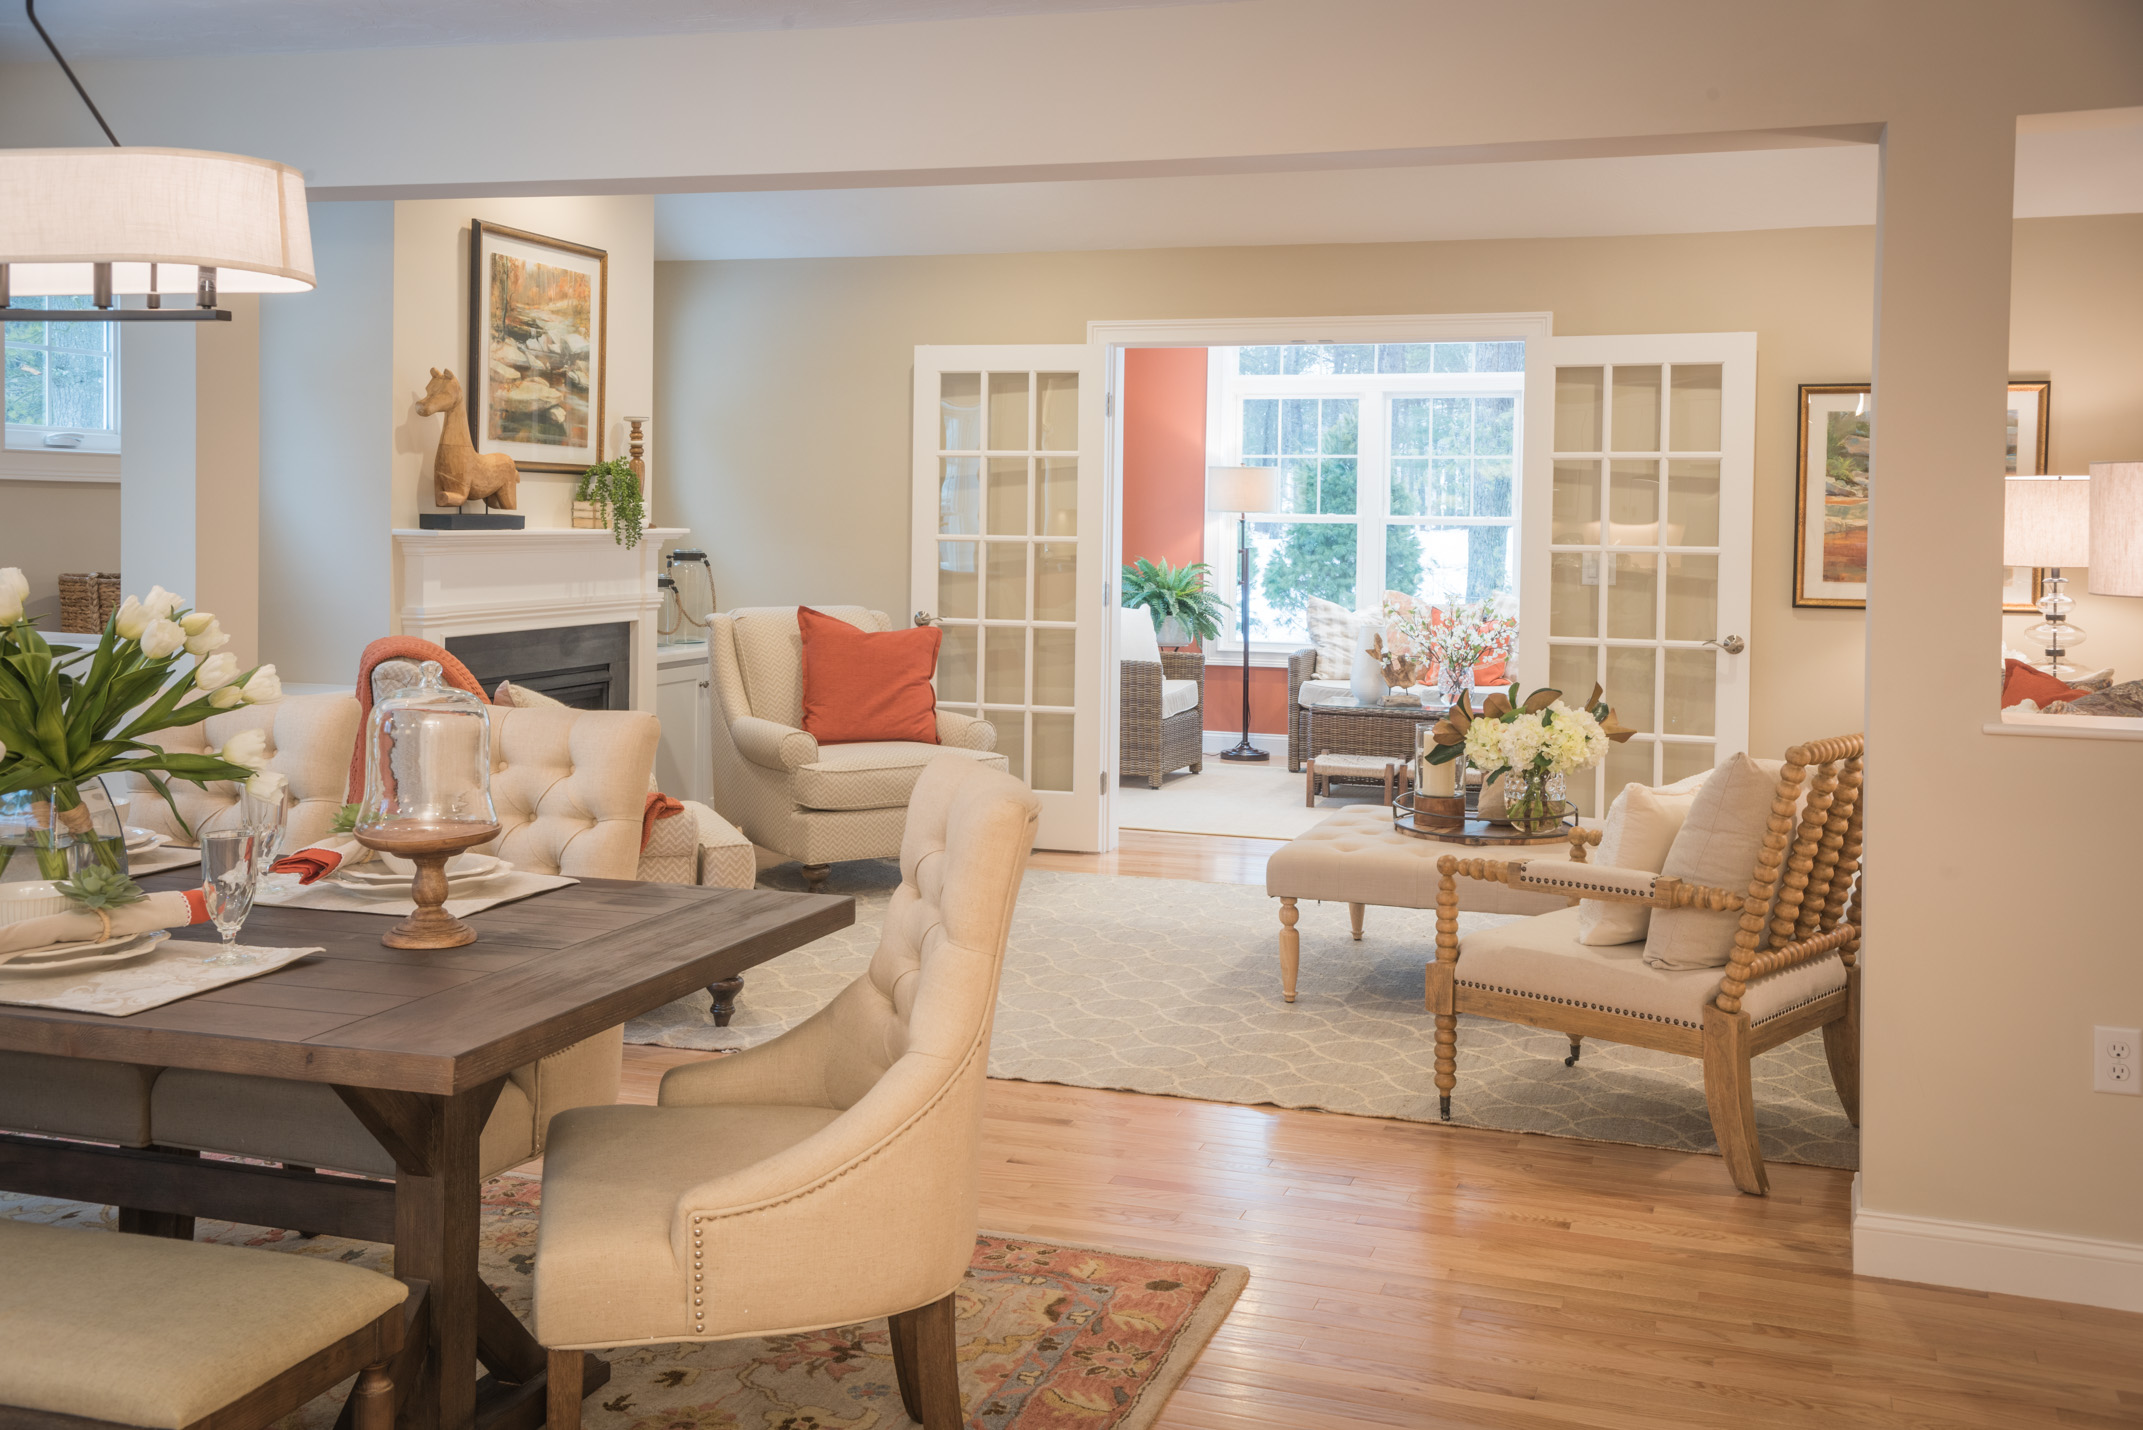 A Beautiful Setting In Your Mayflower Home In Plymouth, Massachusetts